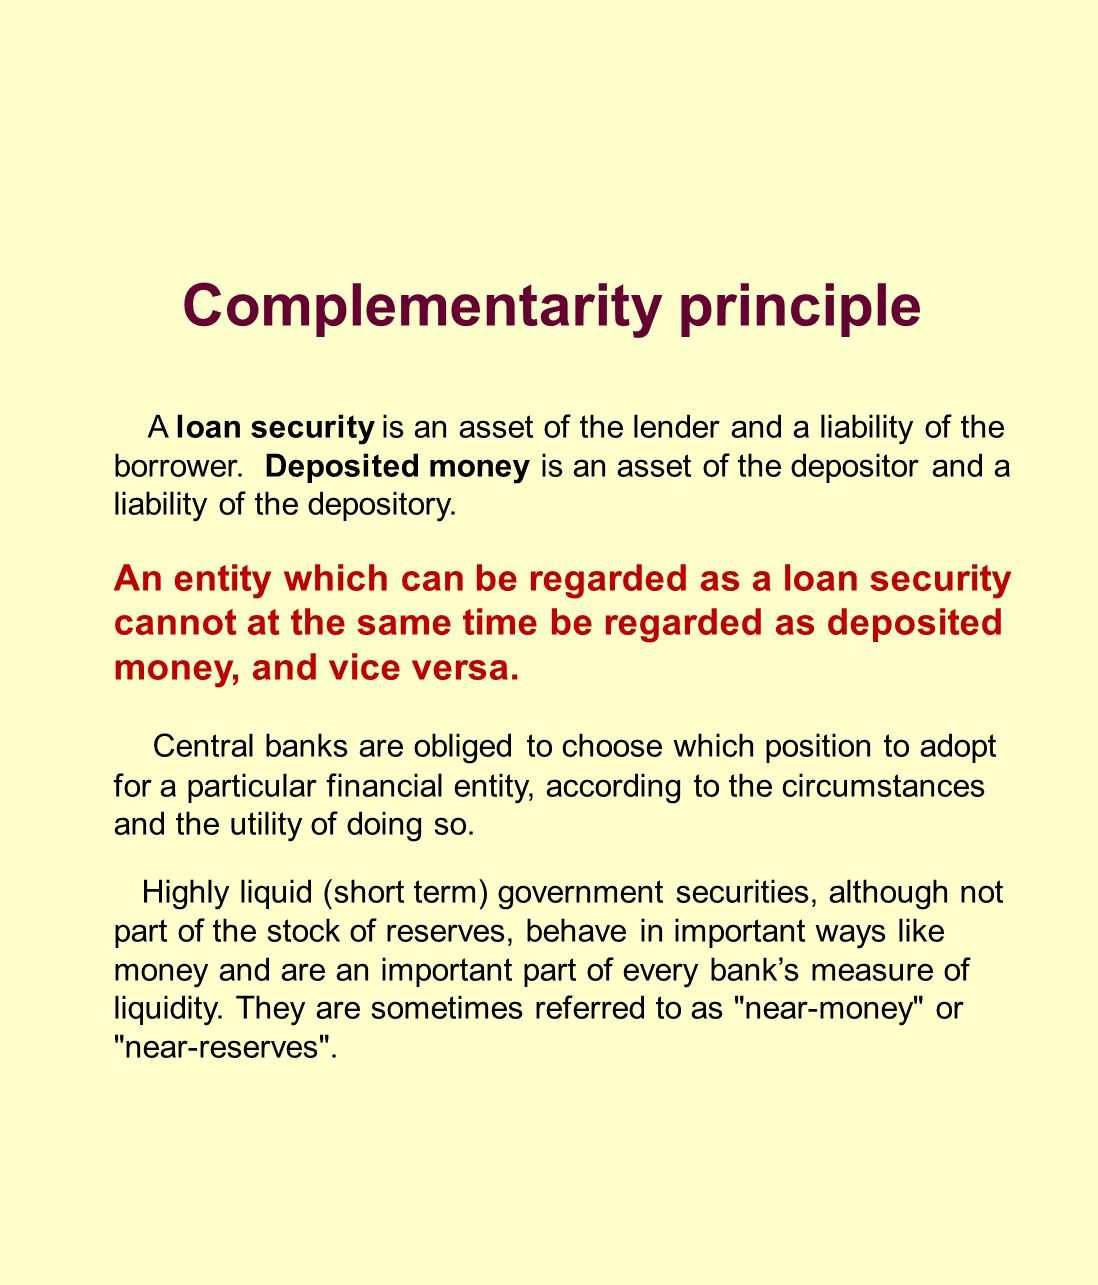 Complementarity principle A loan security is an asset of the lender and a liability of the borrower. Deposited money is an asset of the depositor and